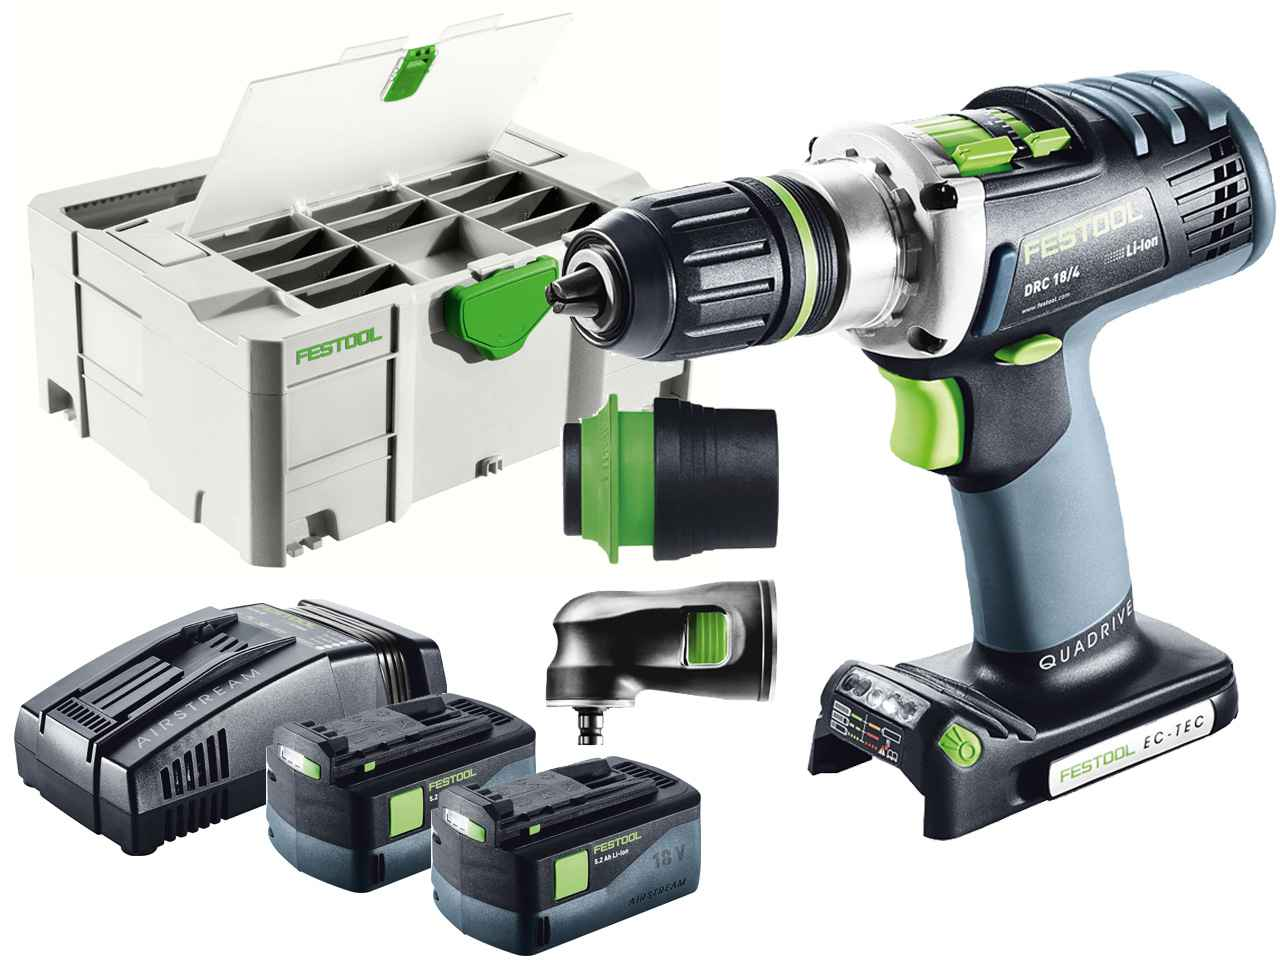 festool drc 18 4 li 5 2 set 18v cordless drill in systainer 2 df t loc. Black Bedroom Furniture Sets. Home Design Ideas